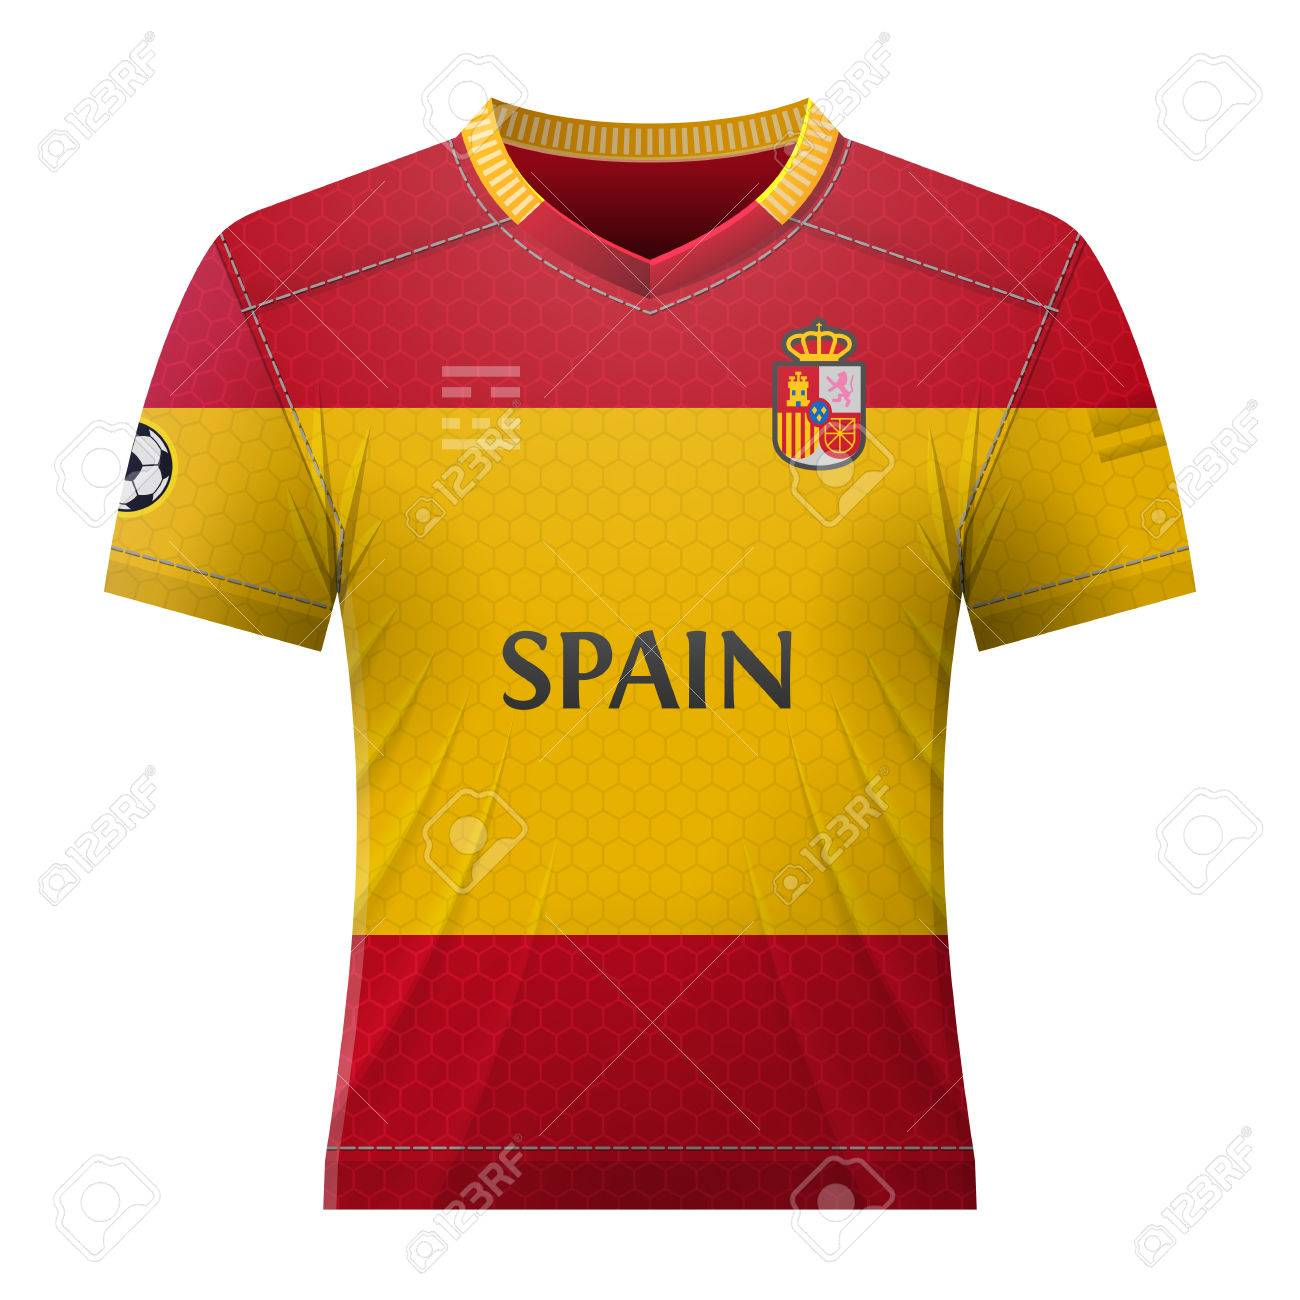 new product 5a81a 6925b Soccer shirt in colors of spanish flag. National jersey for football..